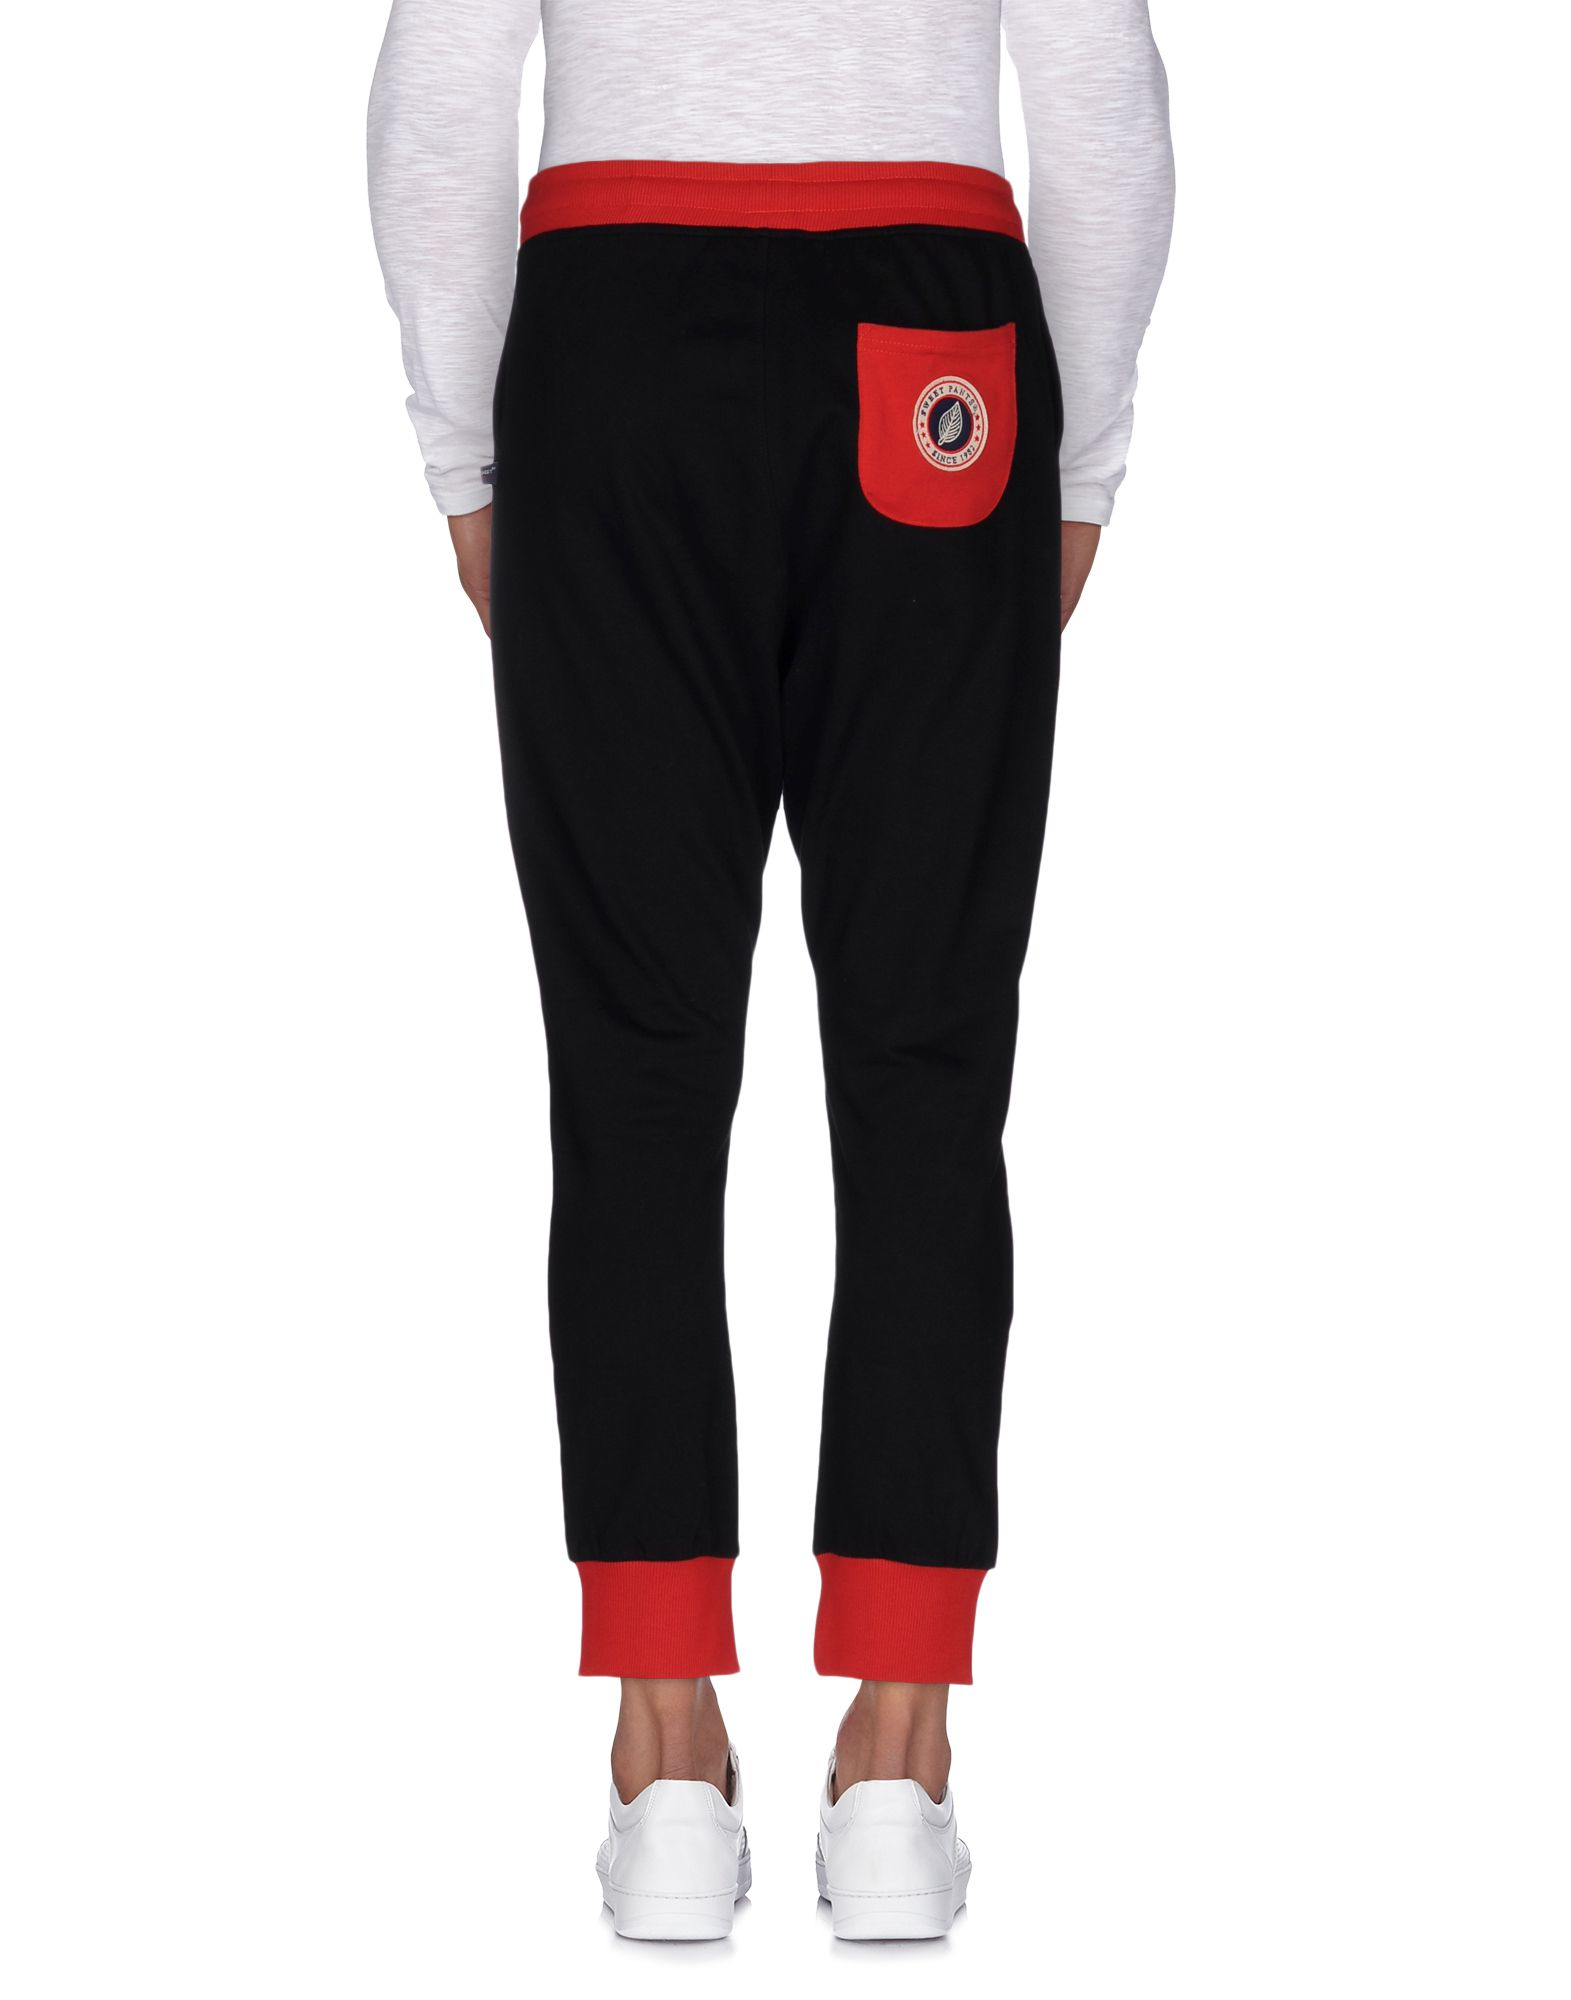 Shop for and buy sweet pants online at Macy's. Find sweet pants at Macy's.